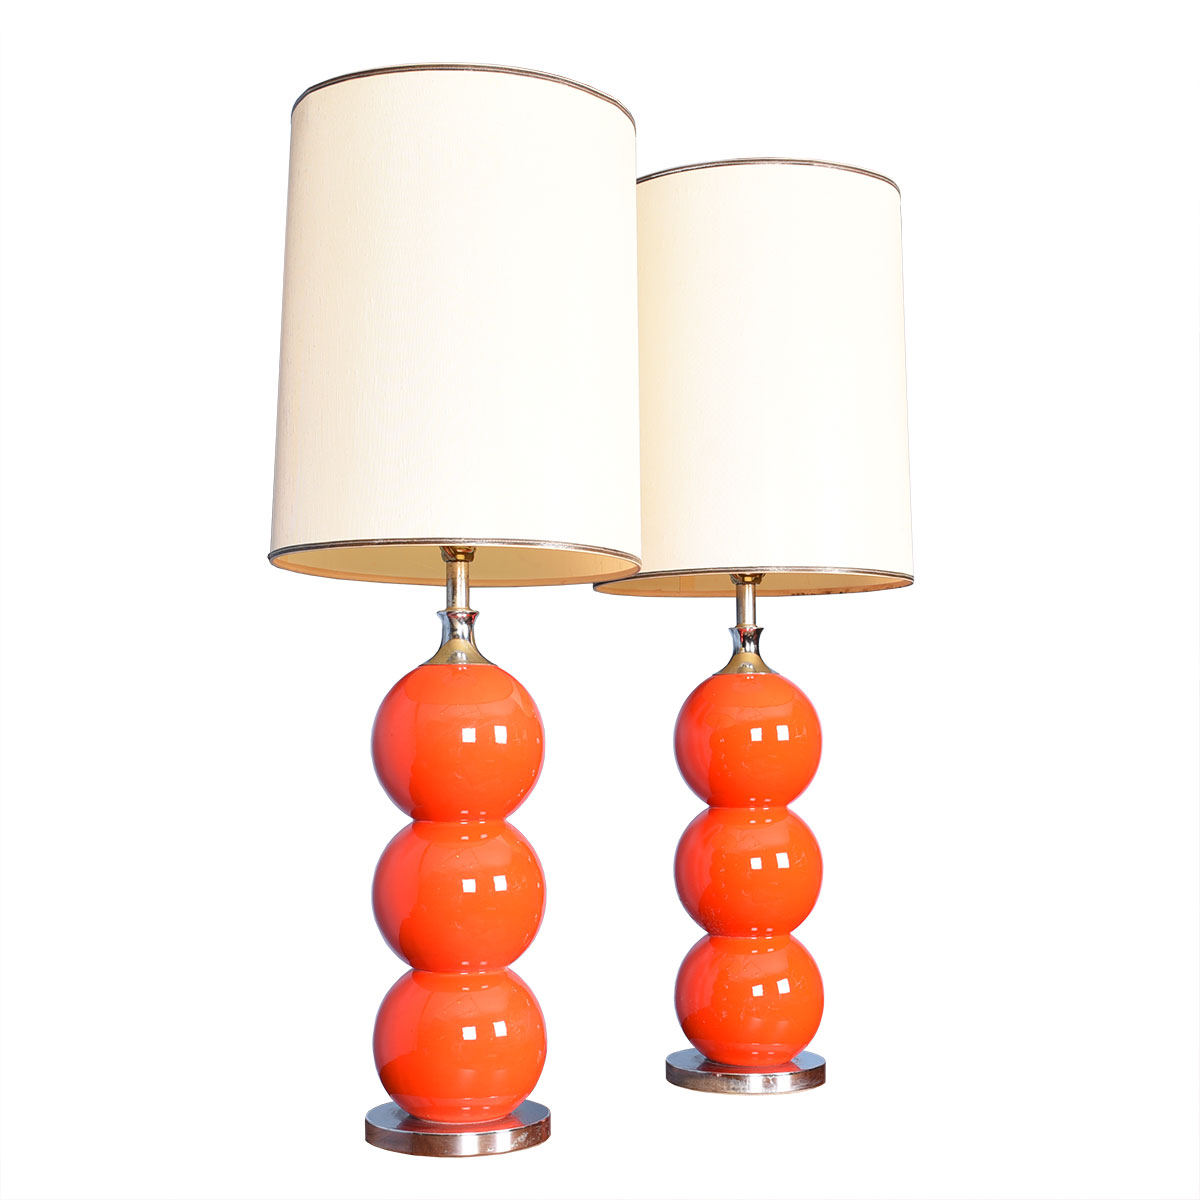 Pair of Red-Orange Stacked-Ball Table Lamps